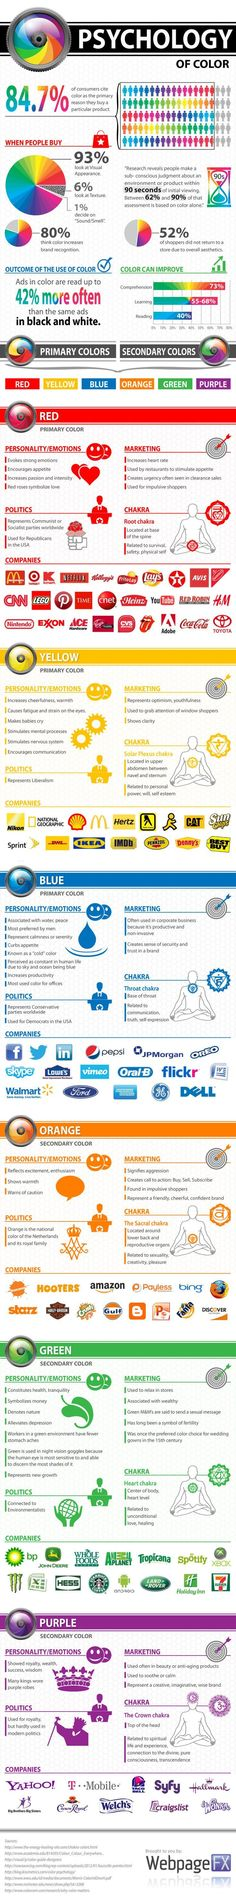 The Secret Psychology of Color in Marketing: Infographic